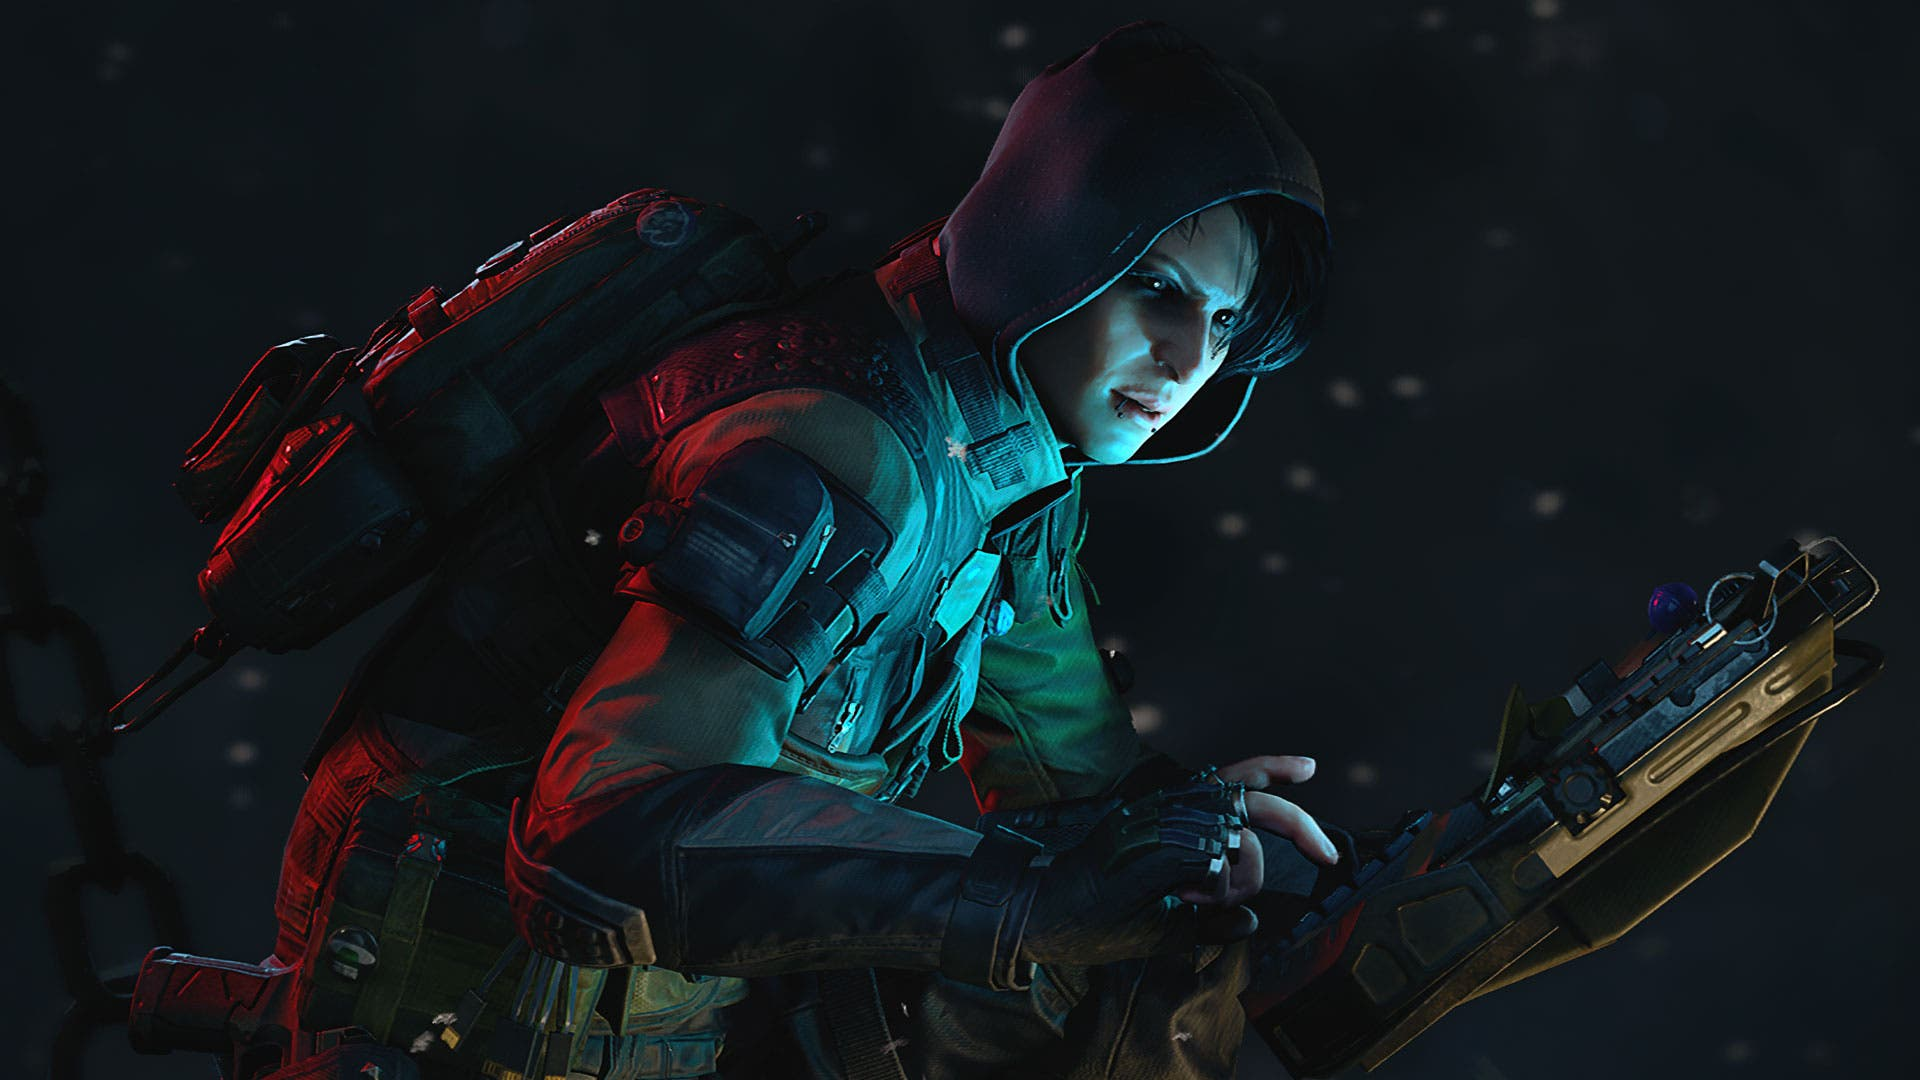 Operation Absolute Zero llega a Call of Duty: Black Ops 4 con una nueva especialista 2